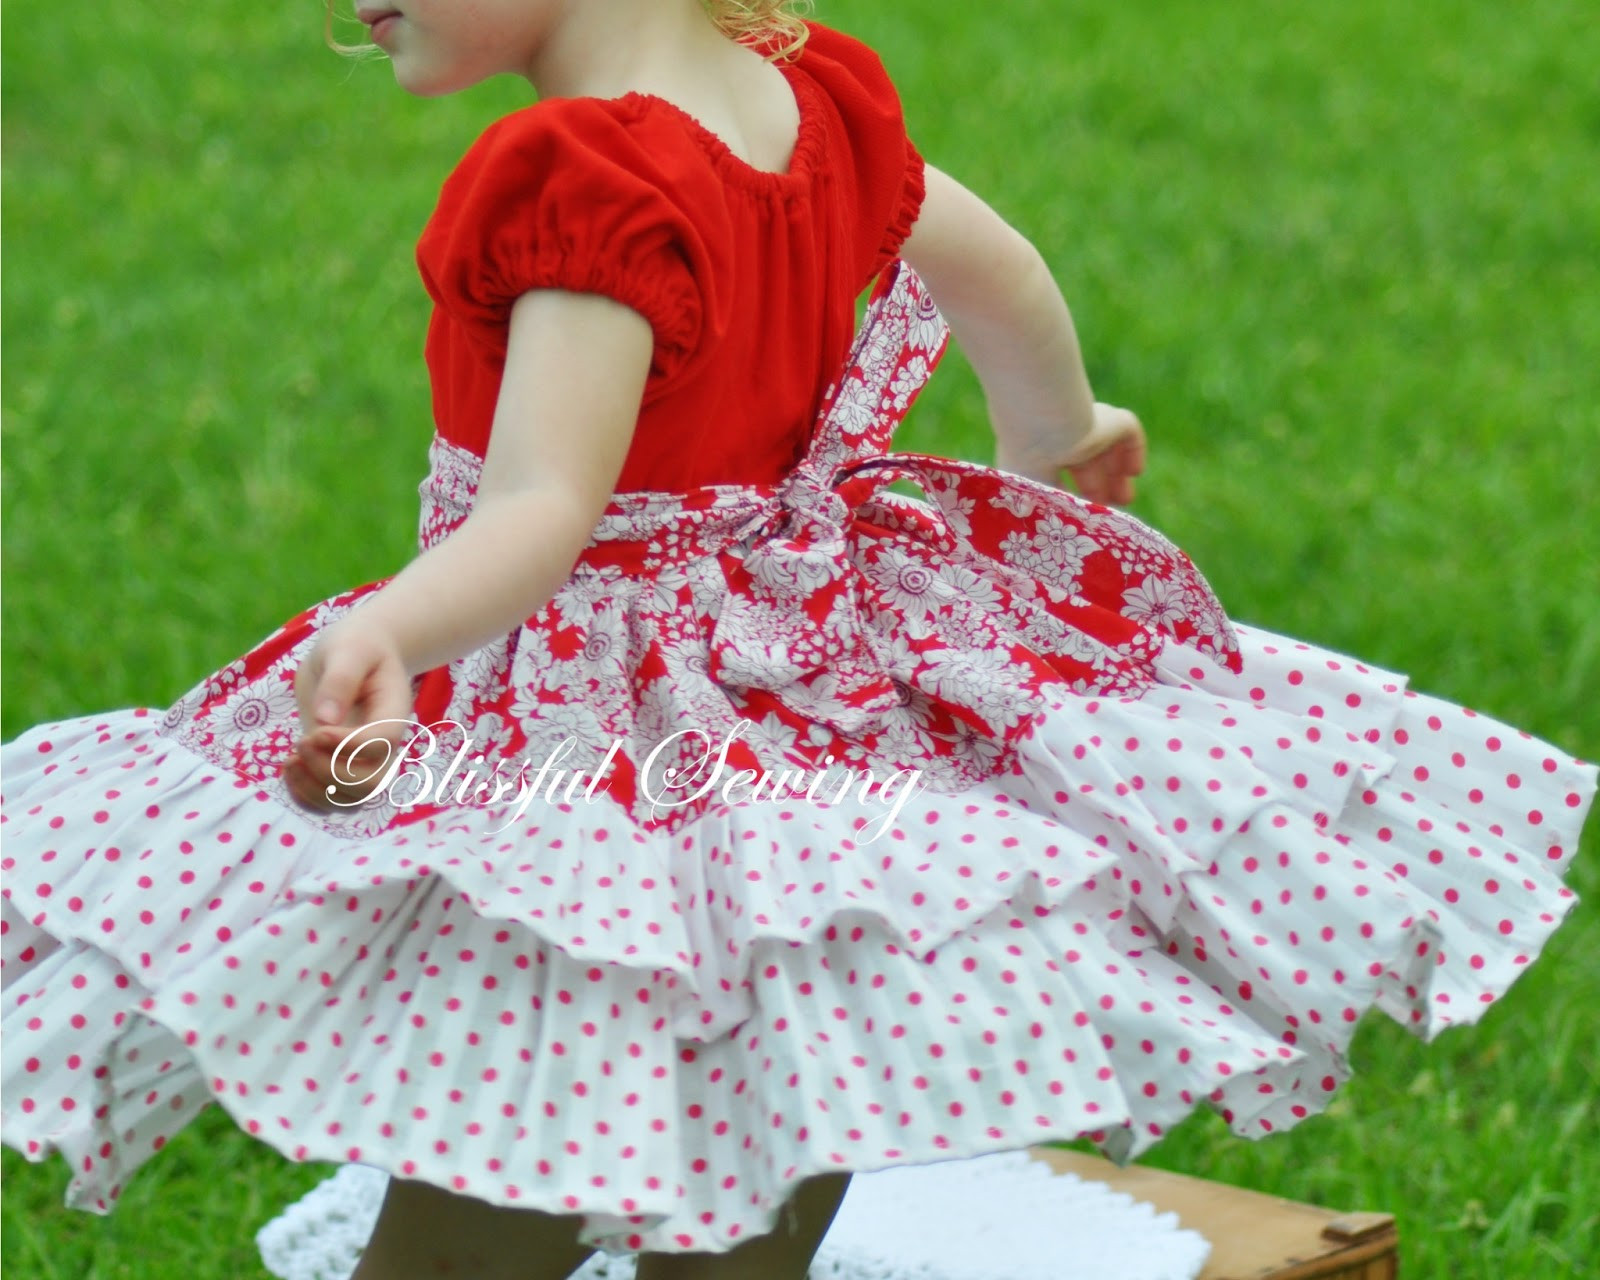 Dress Patterns for Girls Best Of Sewing Patterns for Girls Dresses and Skirts Ruffled Of Unique 49 Pics Dress Patterns for Girls